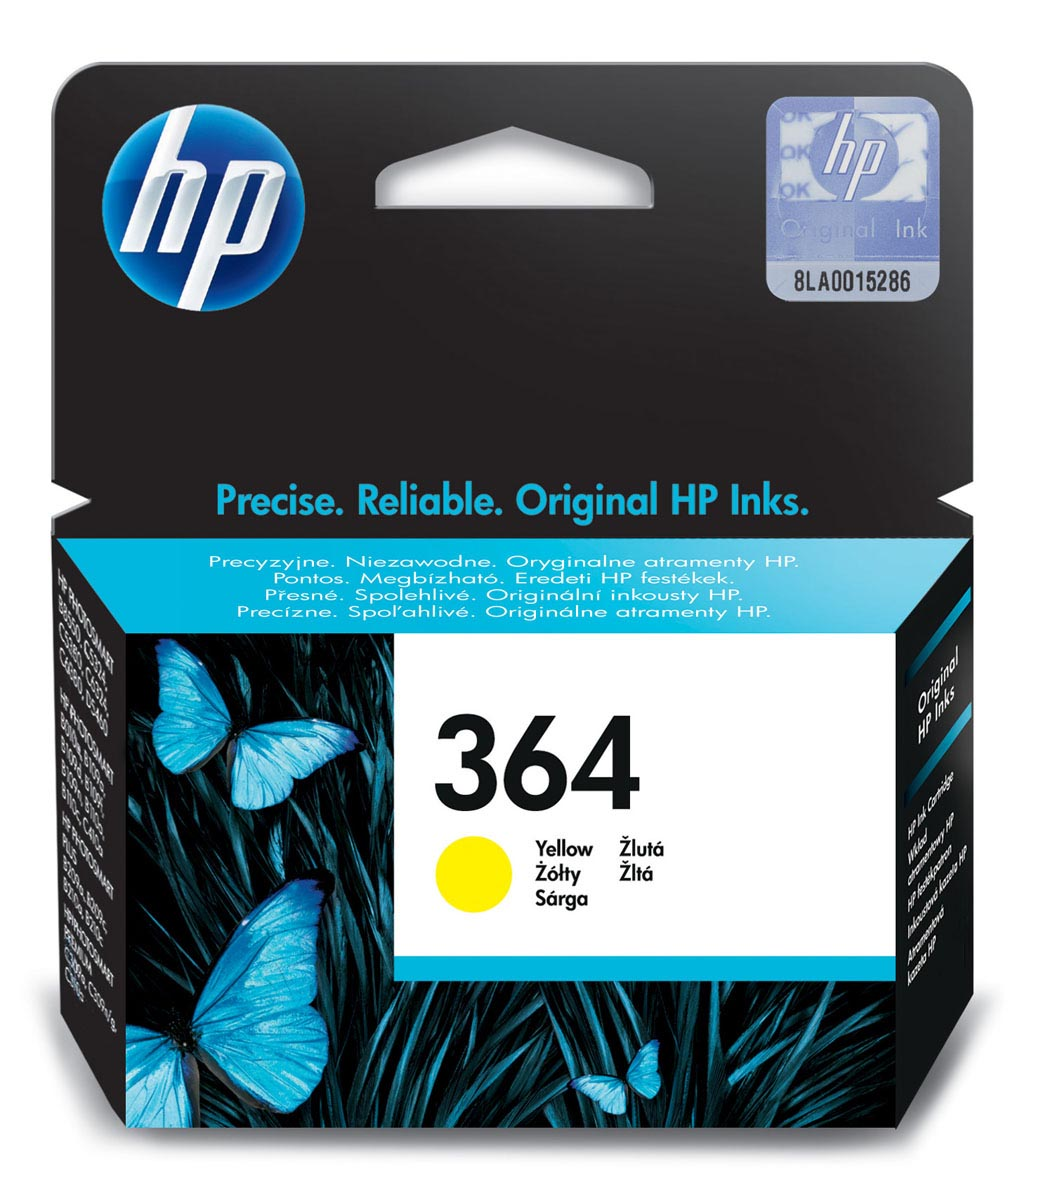 Cartucho de tinta original HP 364 amarillo